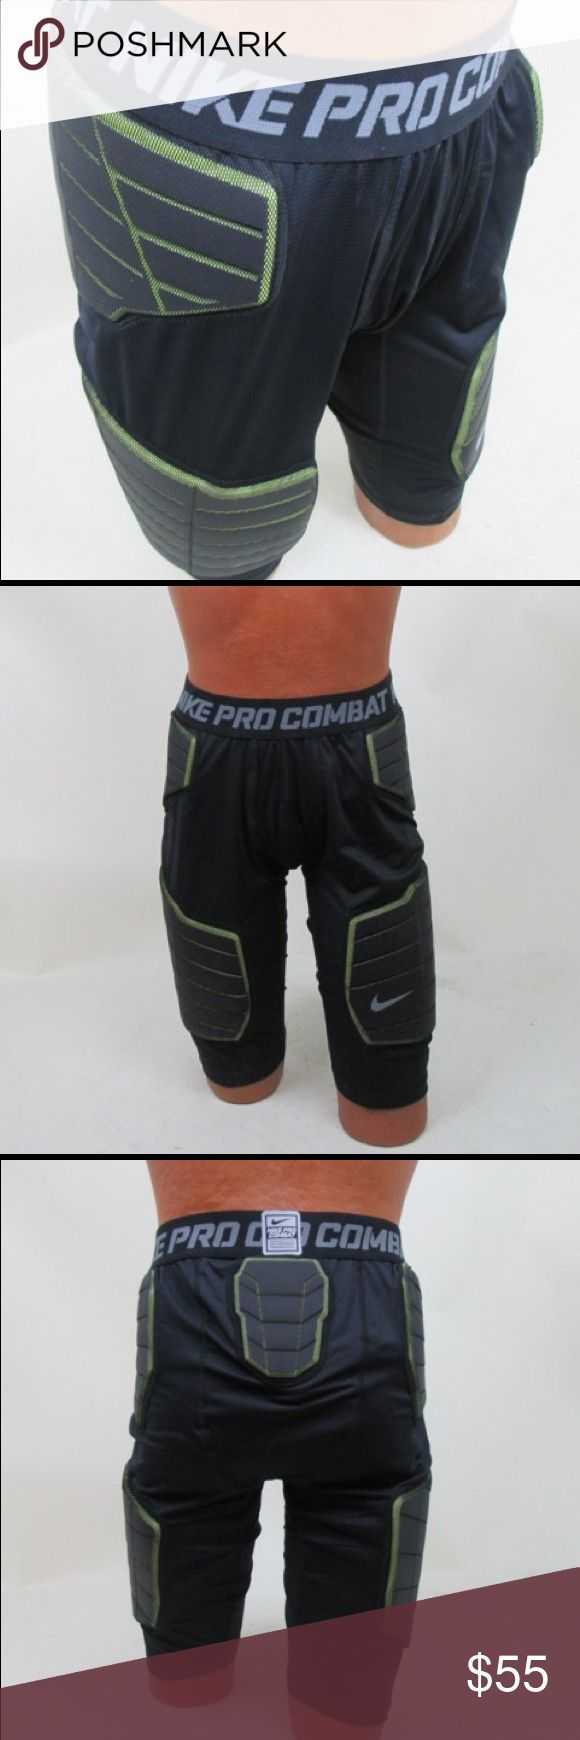 Nike Pro Combat Compression Shorts NWT no wear!  Provides protection on thighs, hips and tailbone as well as comfort with Dri-Fit technology and stretch mesh flexibility. Nike Shorts Athletic